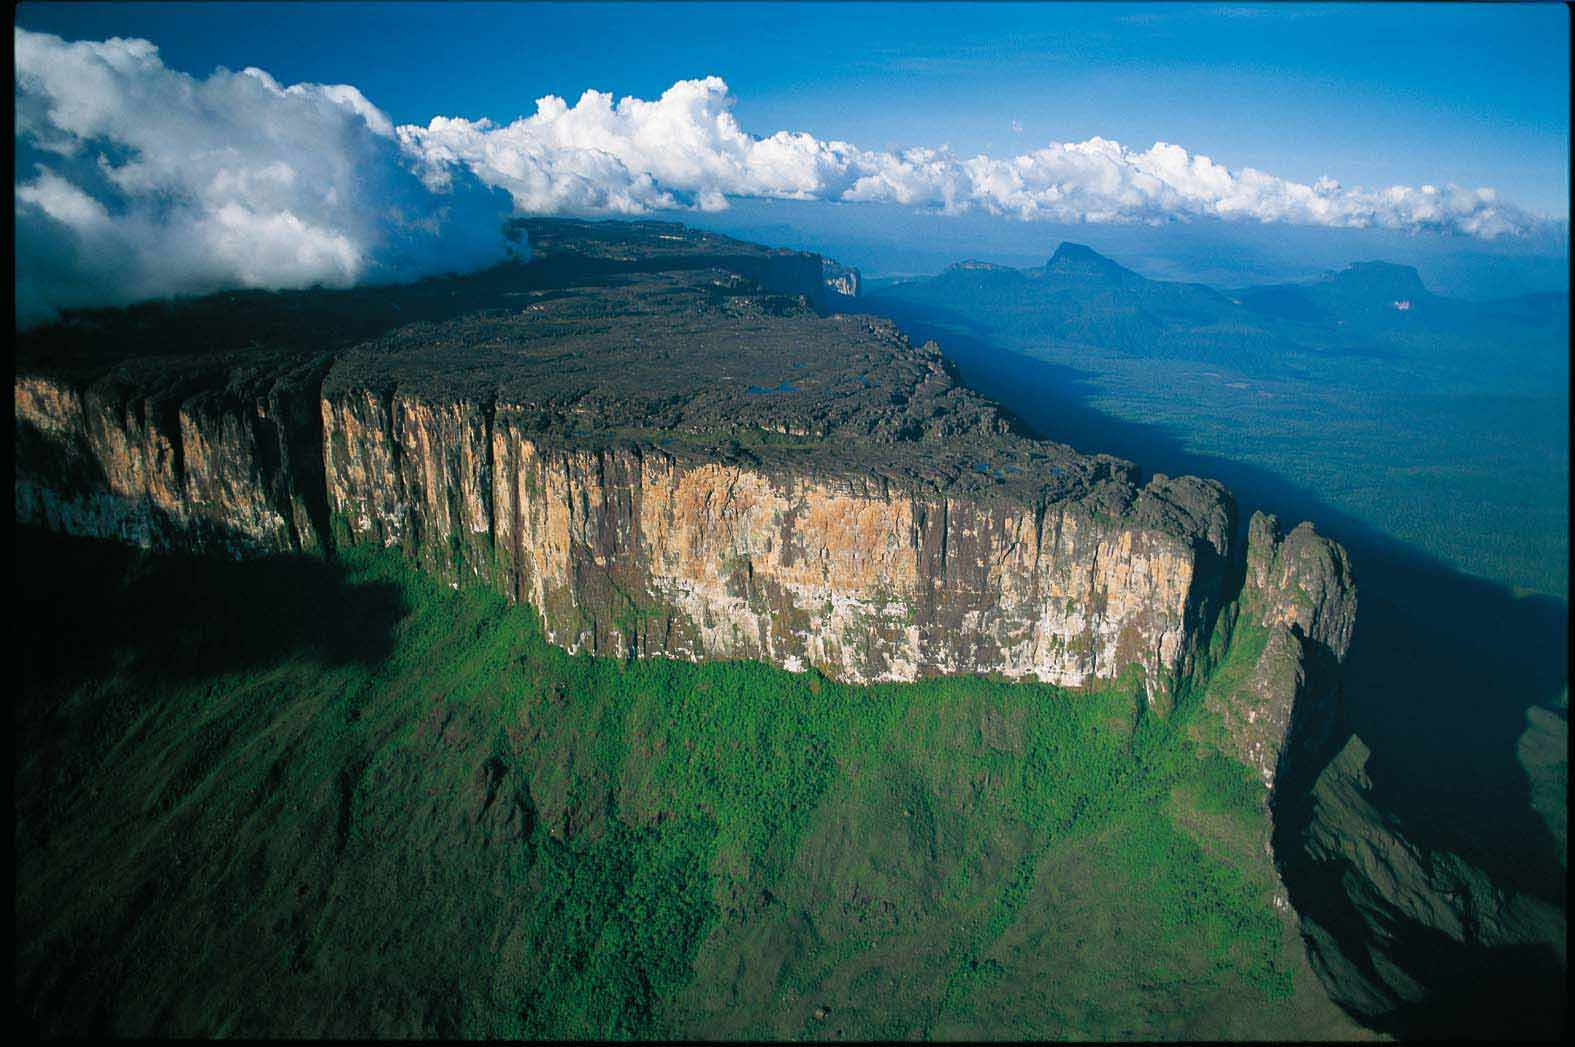 Parque Nacional Canaima Elsewhere in Venezuela, Pin by Diario El Nacional on Parque Nacional Canaima | Pinterest ...